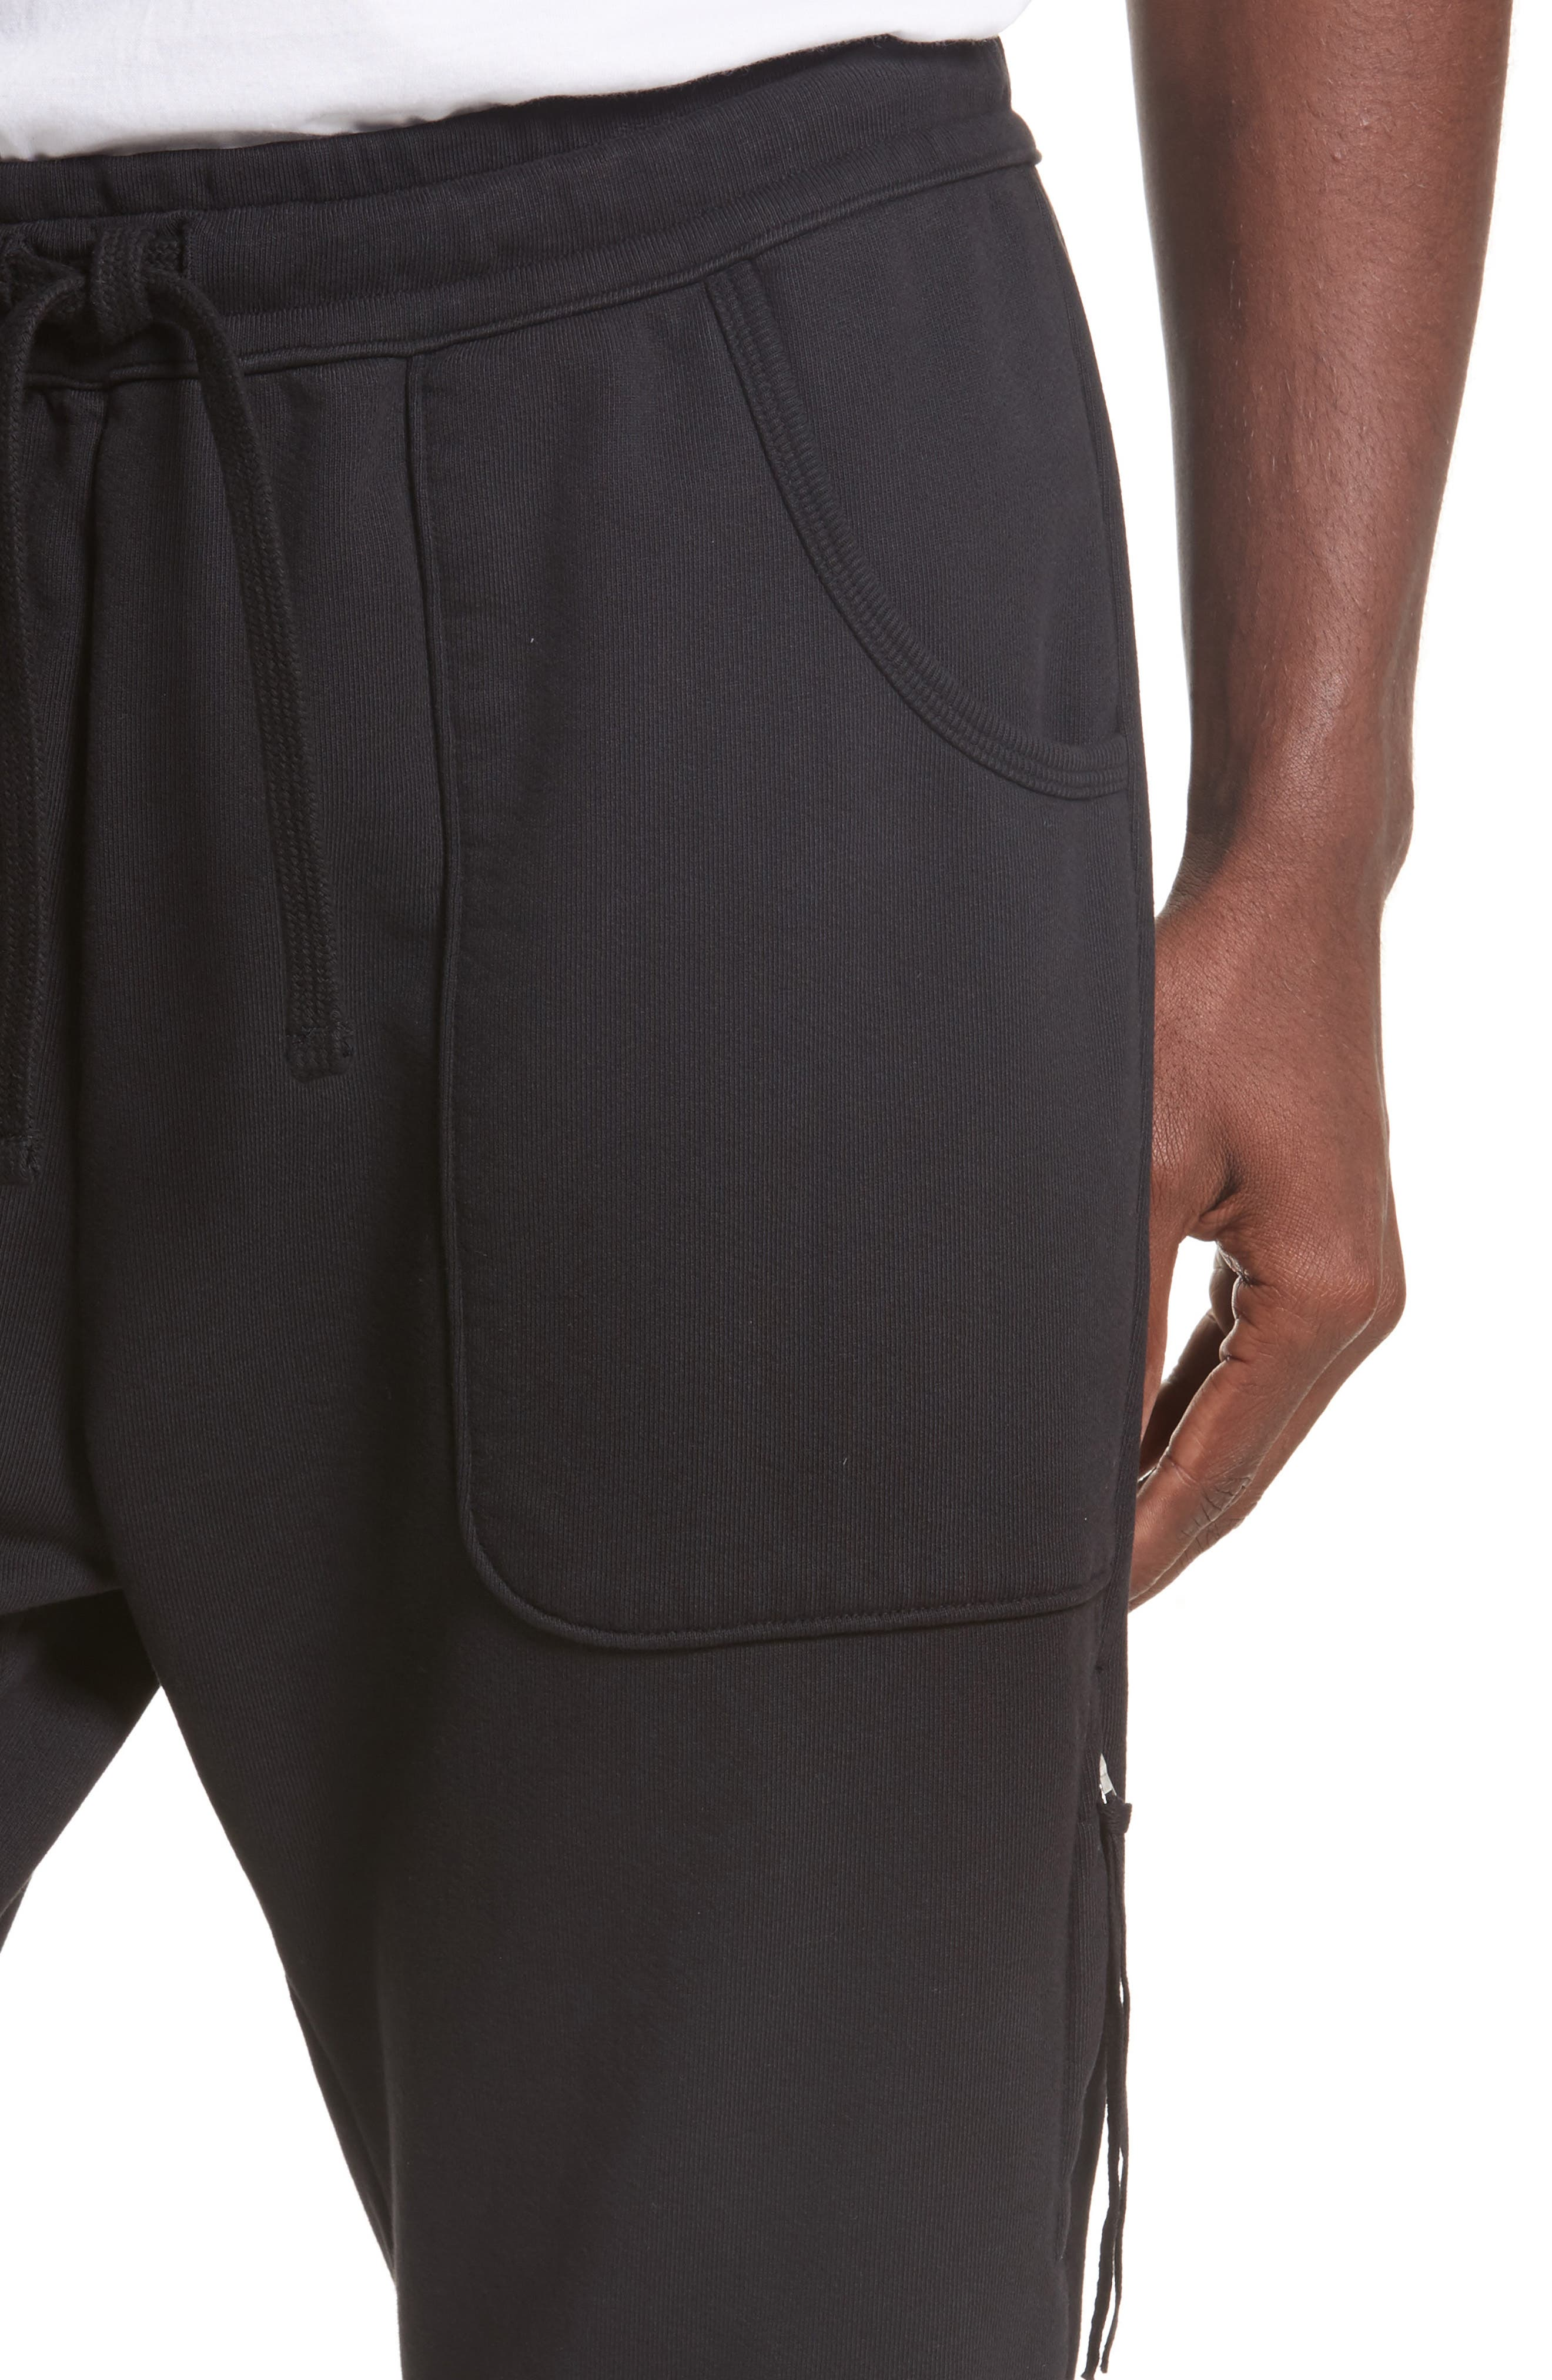 Muldoom Cargo Jogger Pants,                             Alternate thumbnail 9, color,